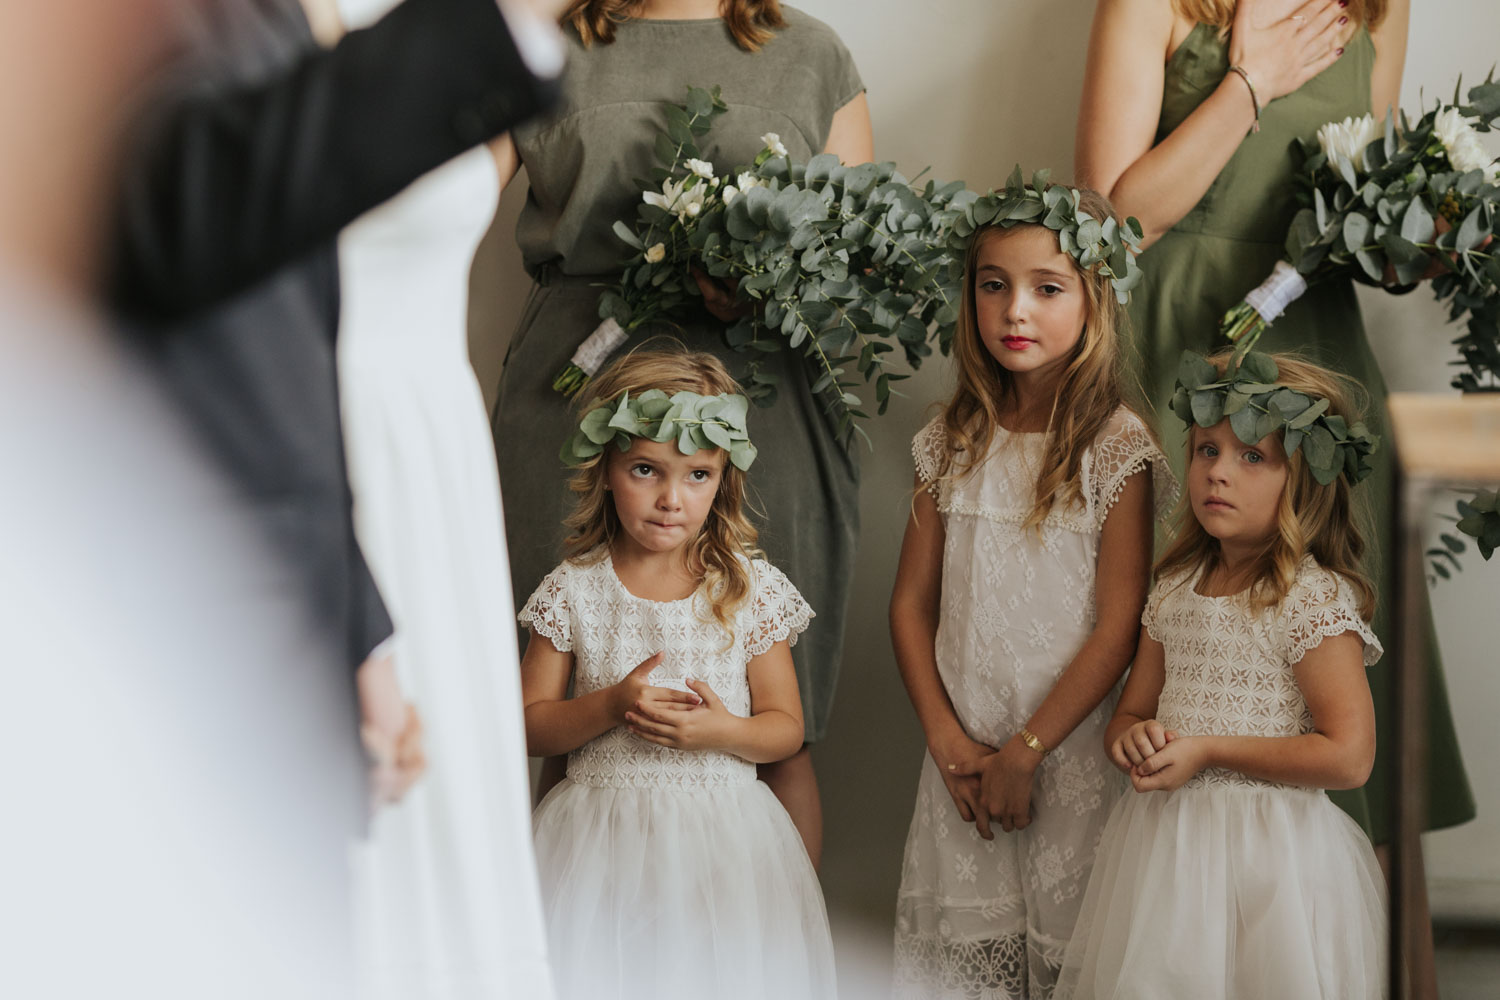 Flowers Girls In Vancouver Wedding Ceremony Wear Lace Dresses And Leaf Crowns